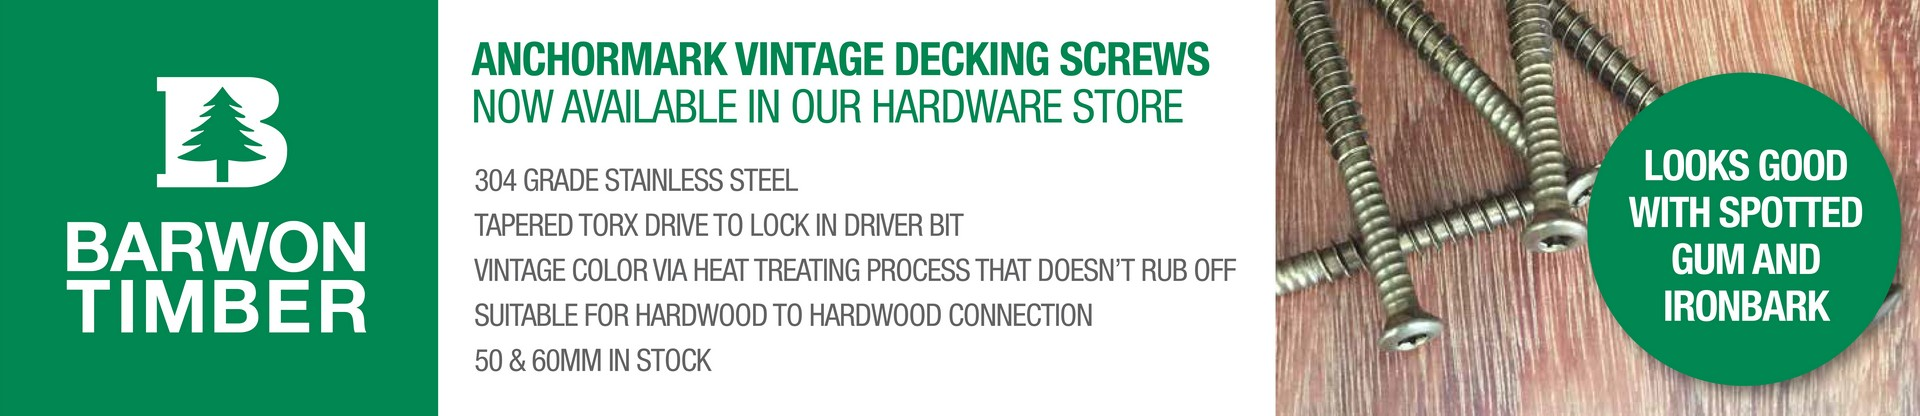 Decking Screws cr tn - Home